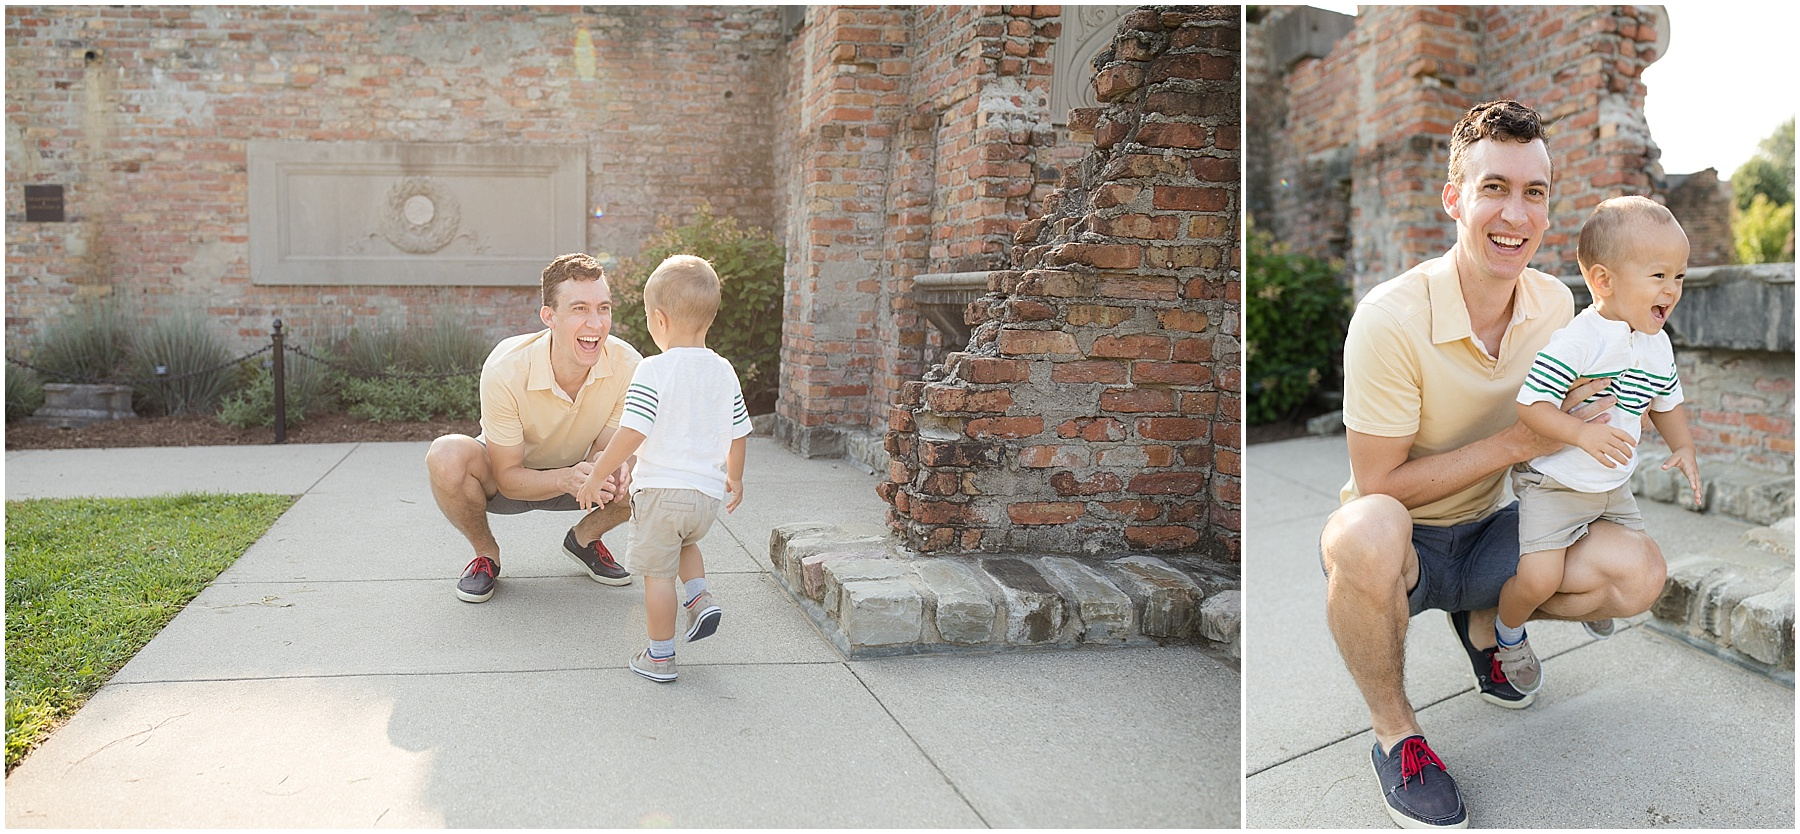 Father and his son playing together. Indianapolis Family Photography, Raindancer Studios